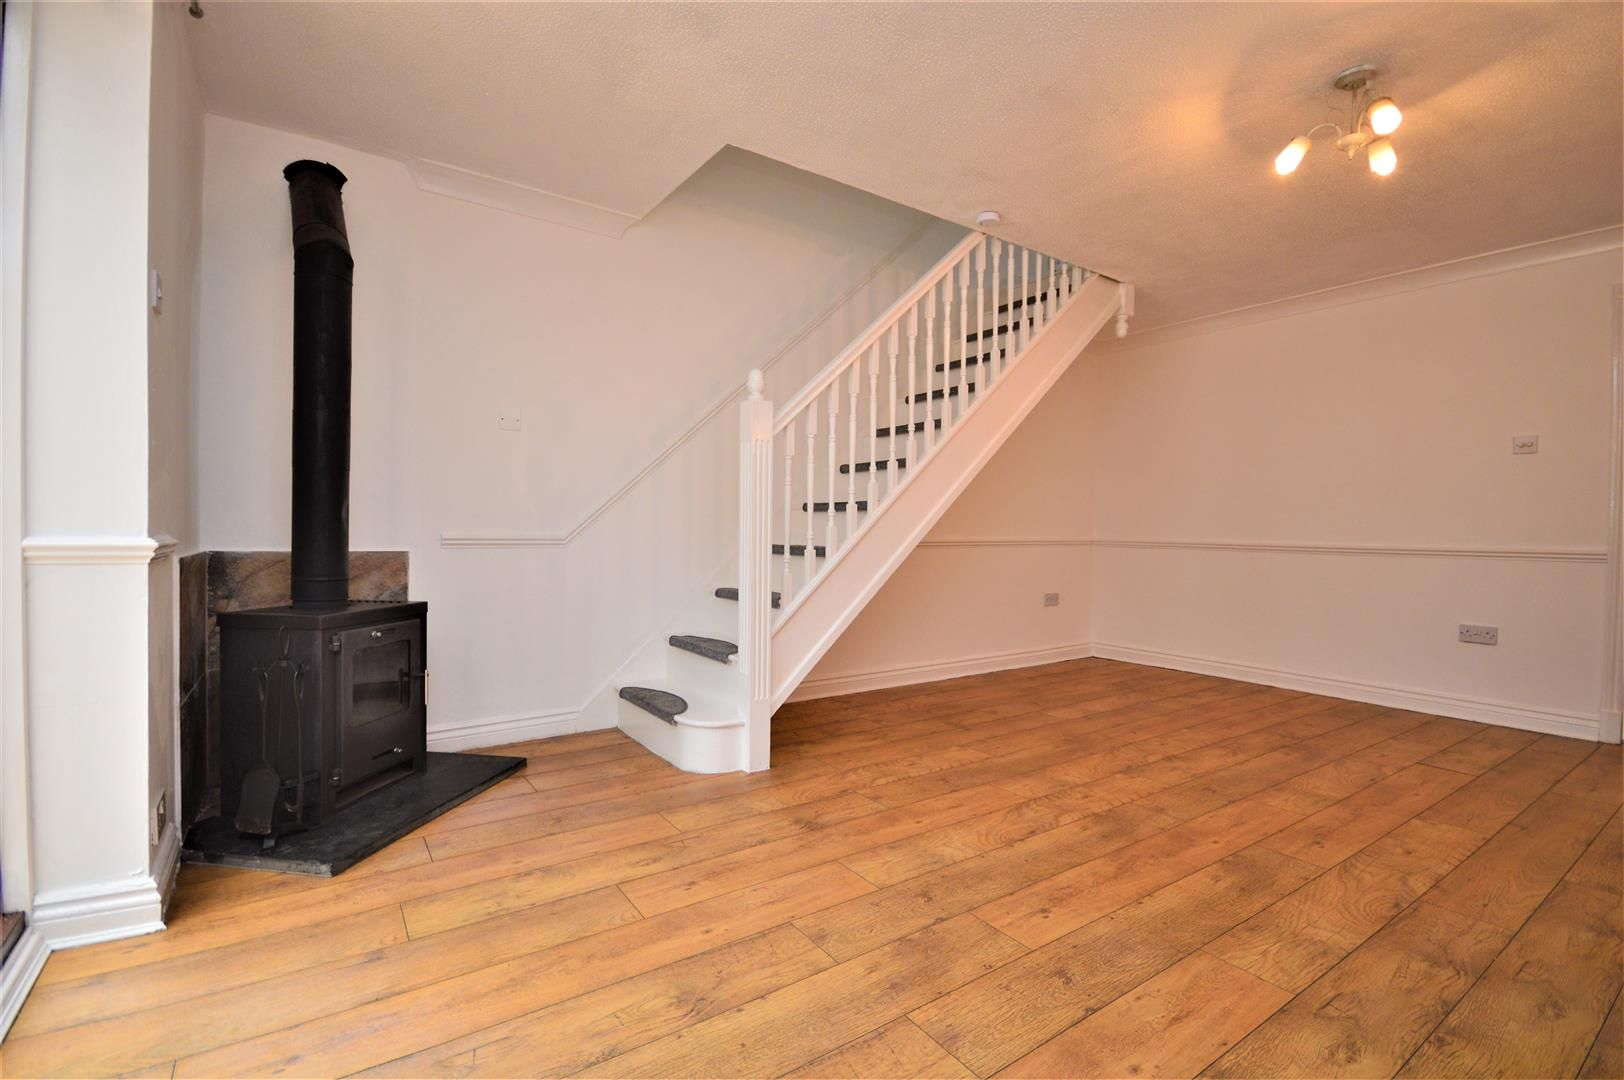 2 bed end-of-terrace for sale in Belmont 9